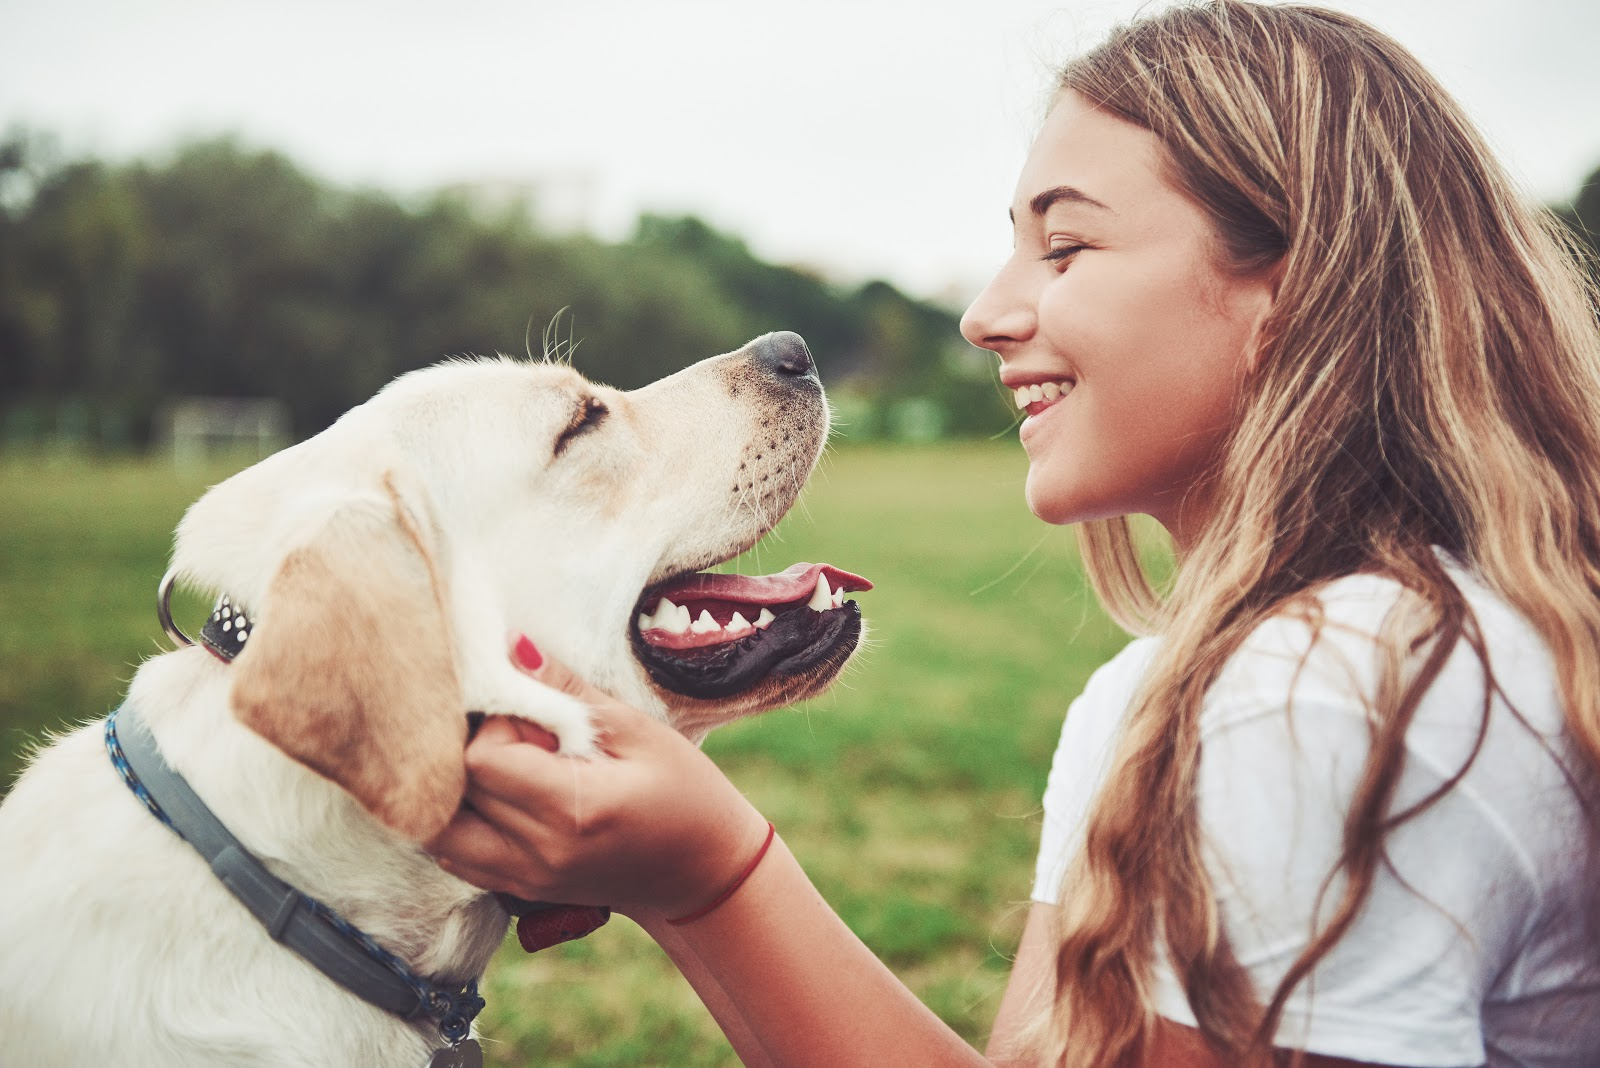 A girl holding the face of her dog, smiling and laughing